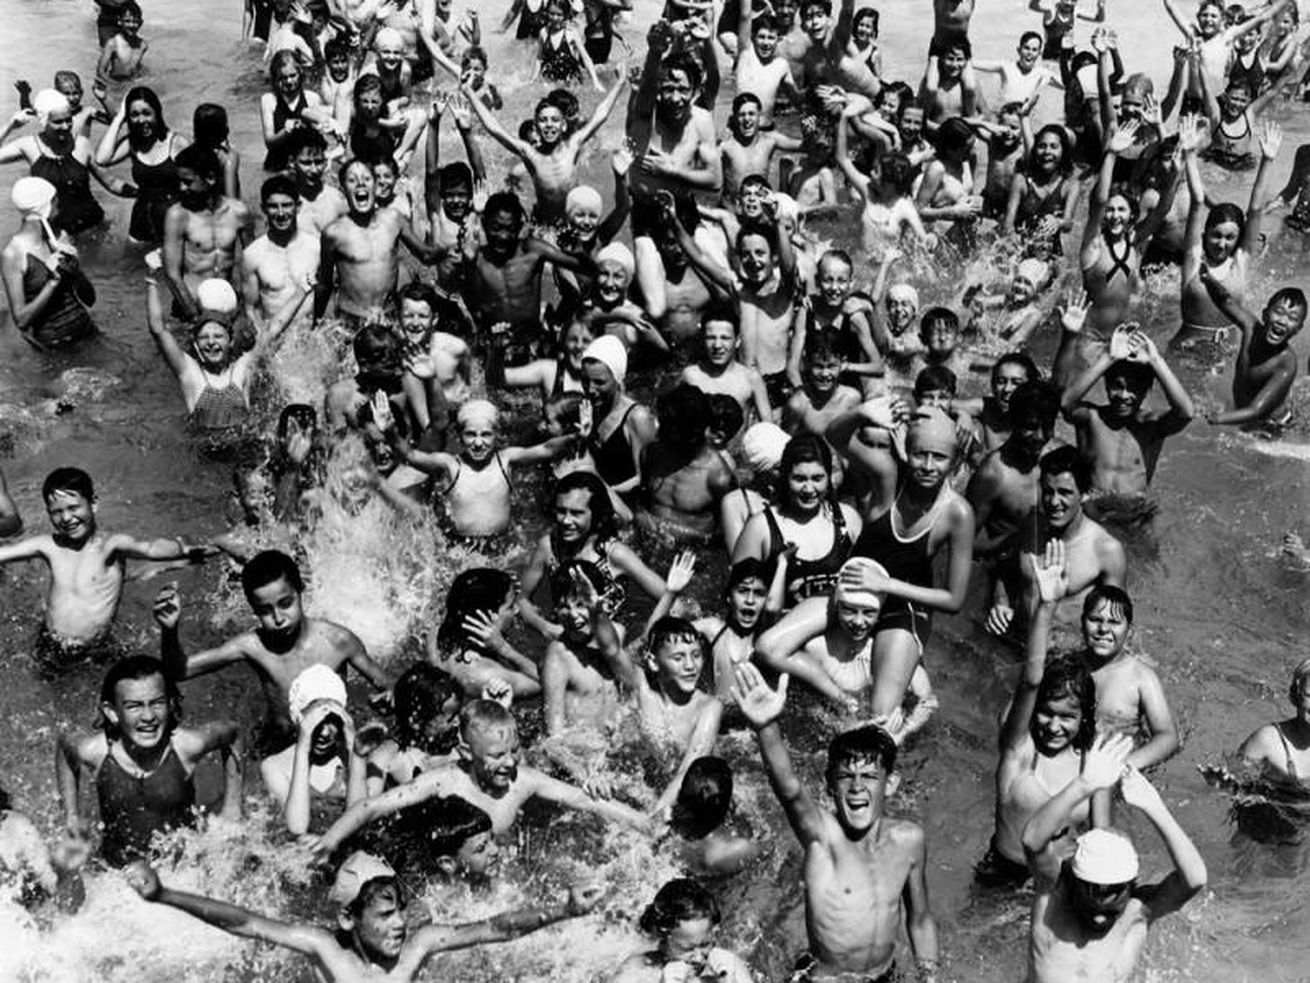 A black and white image of dozens of children splashing, smiling, and throwing their arms in the air as they pose for an overhead photograph.